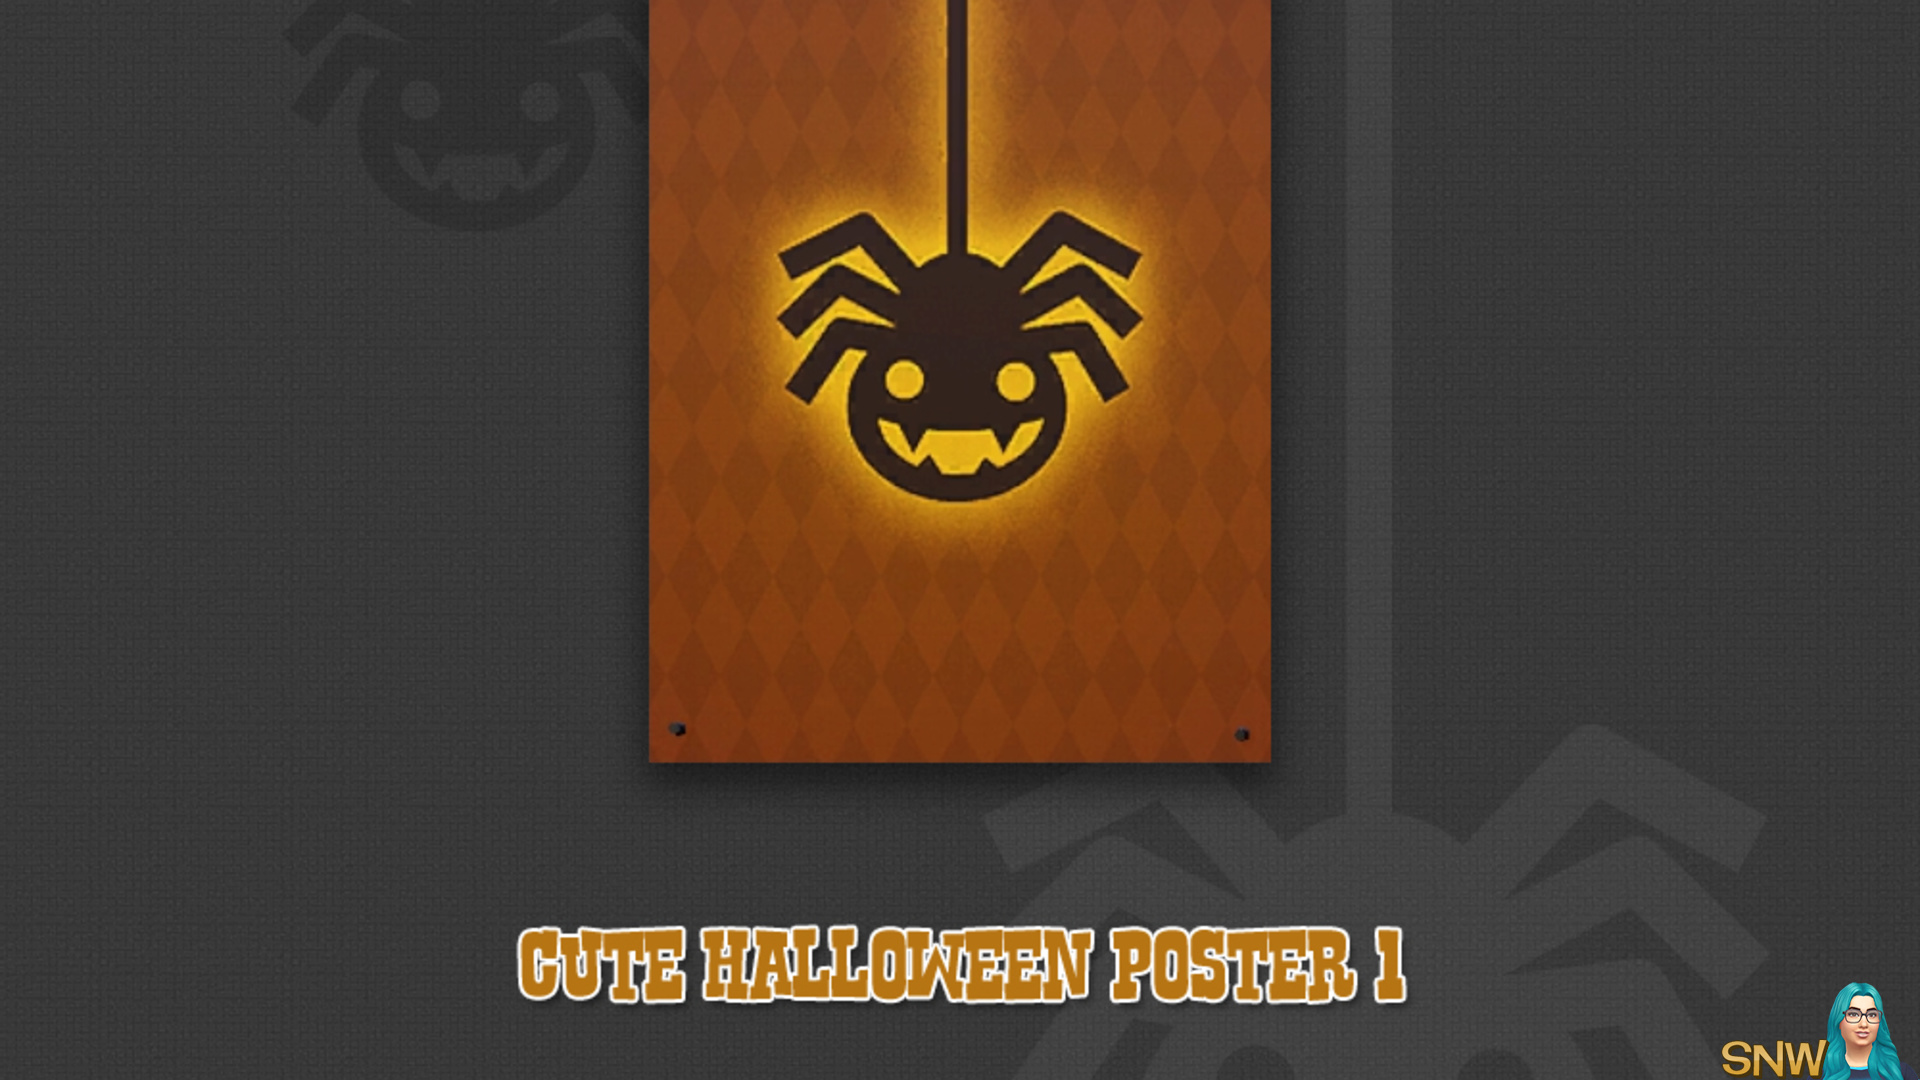 Cute Halloween poster #1 (Spidey)